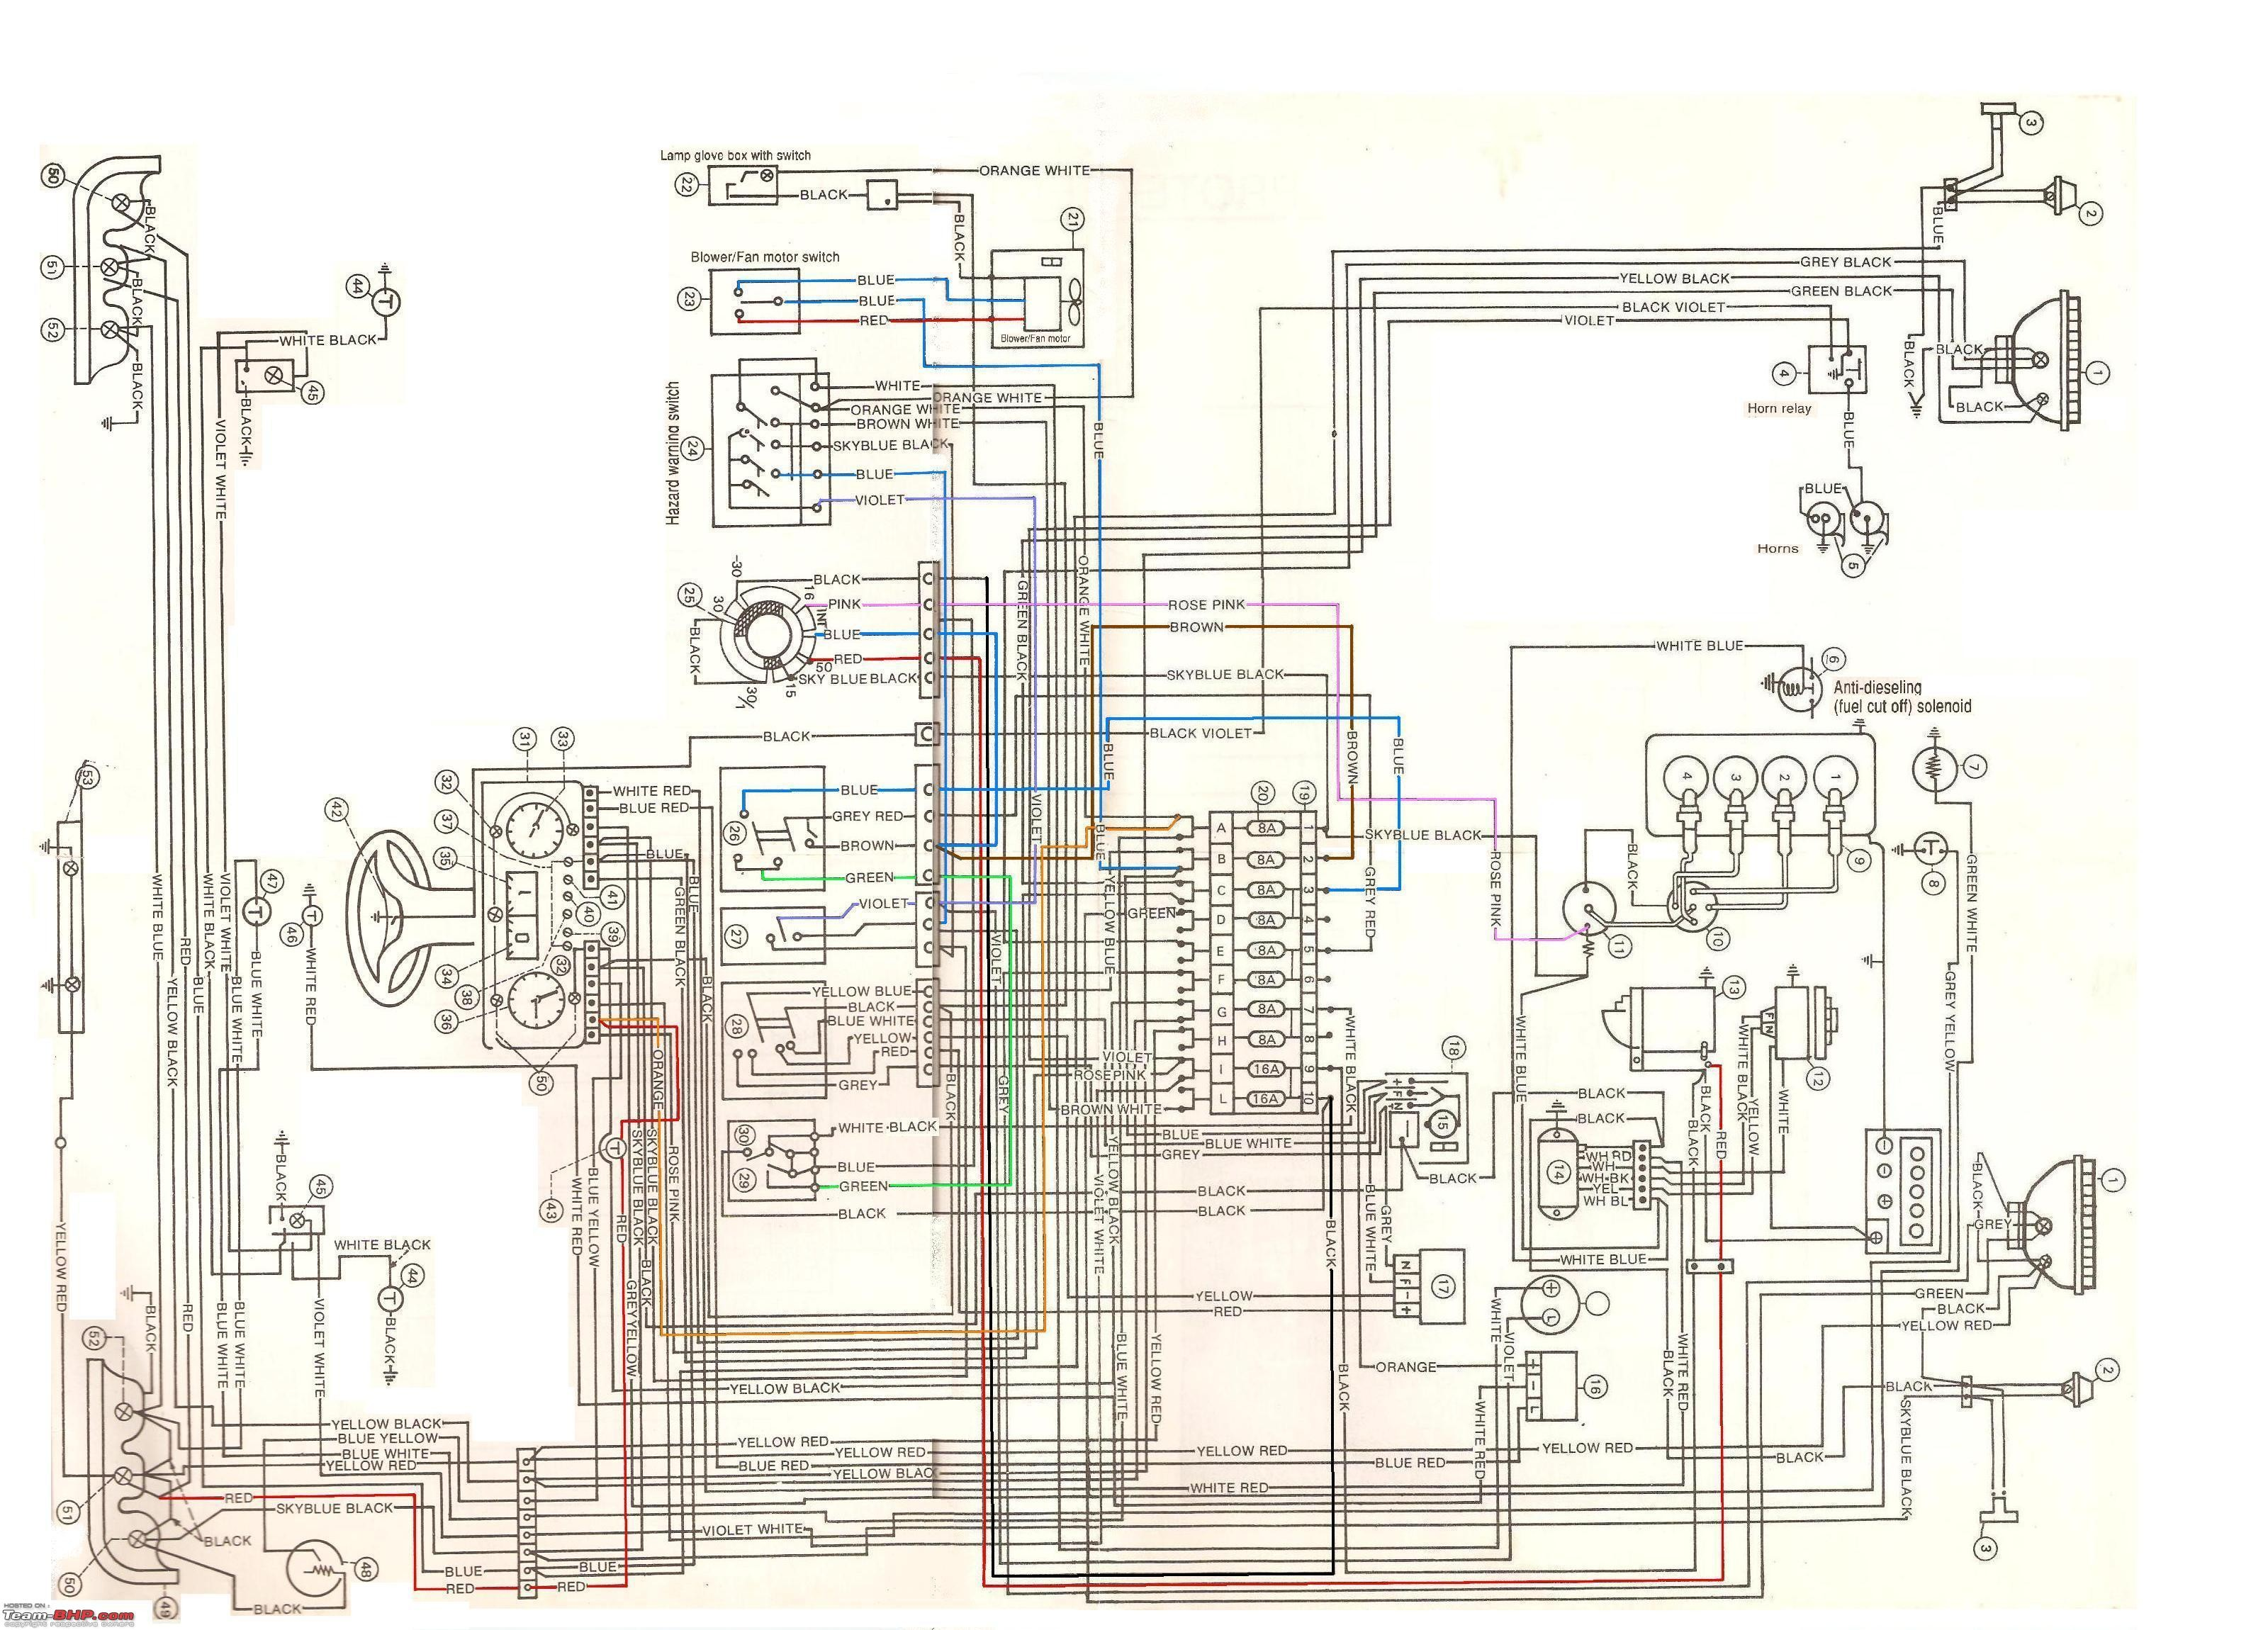 Maruti 800 Engine Diagram Maruti Car Manuals Wiring Diagrams Pdf & Fault Codes